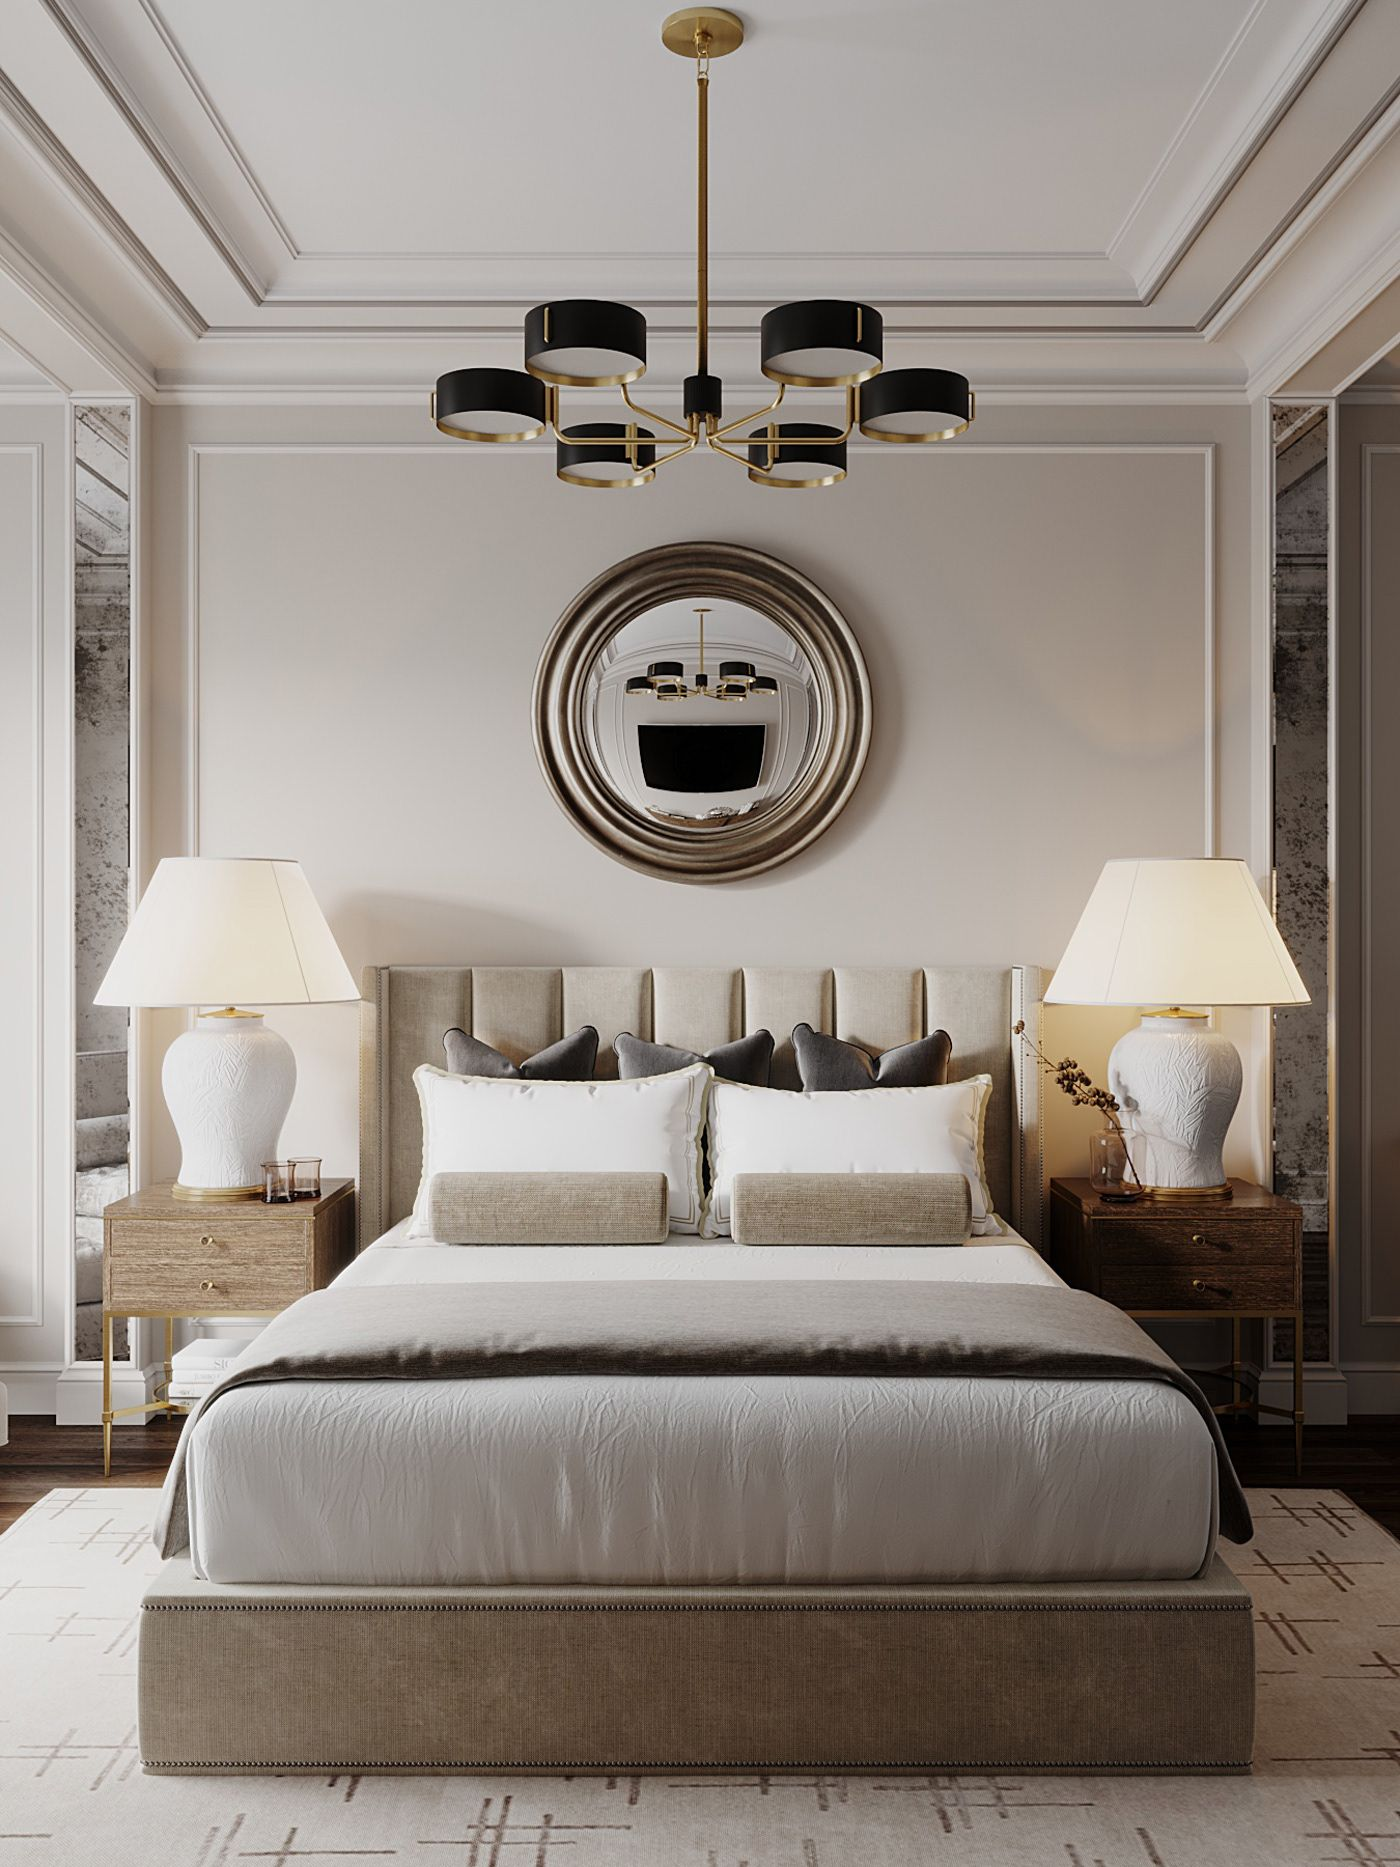 Luxury Hotel Bedrooms: I Present To Your Attention A Draft Of An Apartment In The